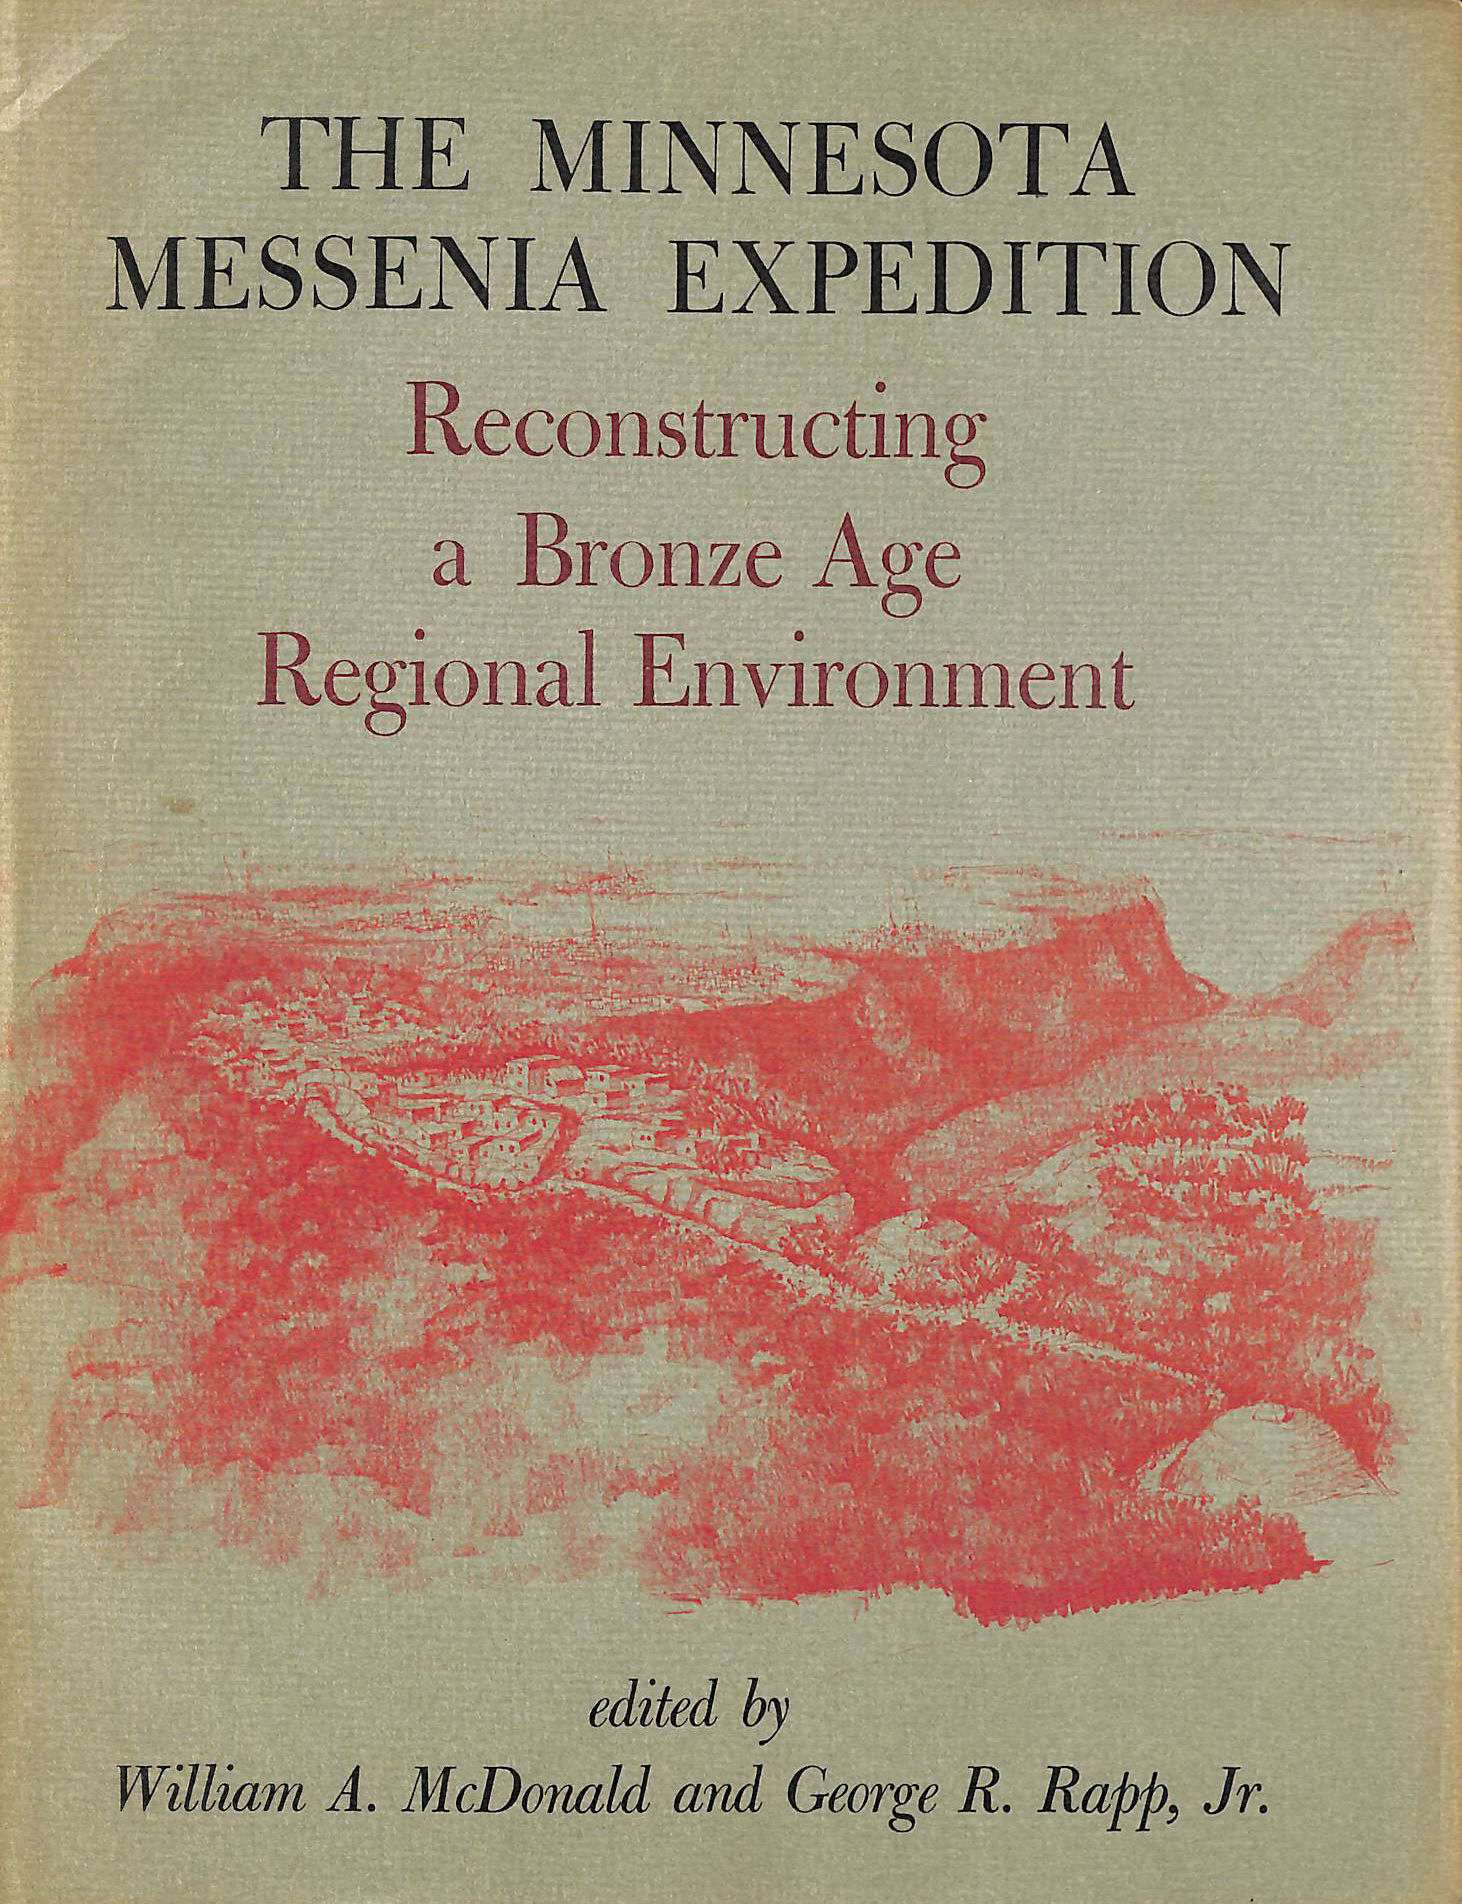 Image for Minnesota Messenia Expedition: Reconstructing a Bronze Age Regional Environment